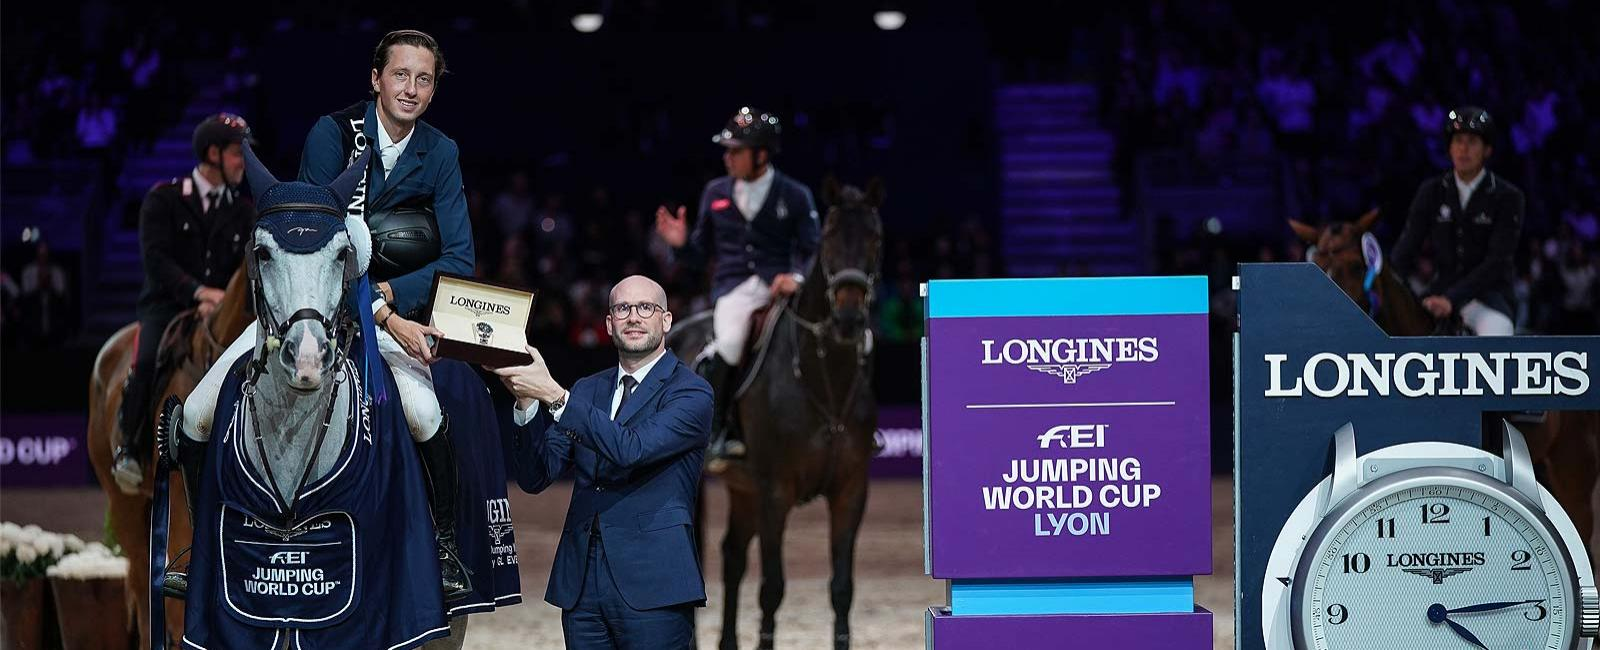 LONGINES EQUITA LYON - Concours Hippique International; Jumping; 2019